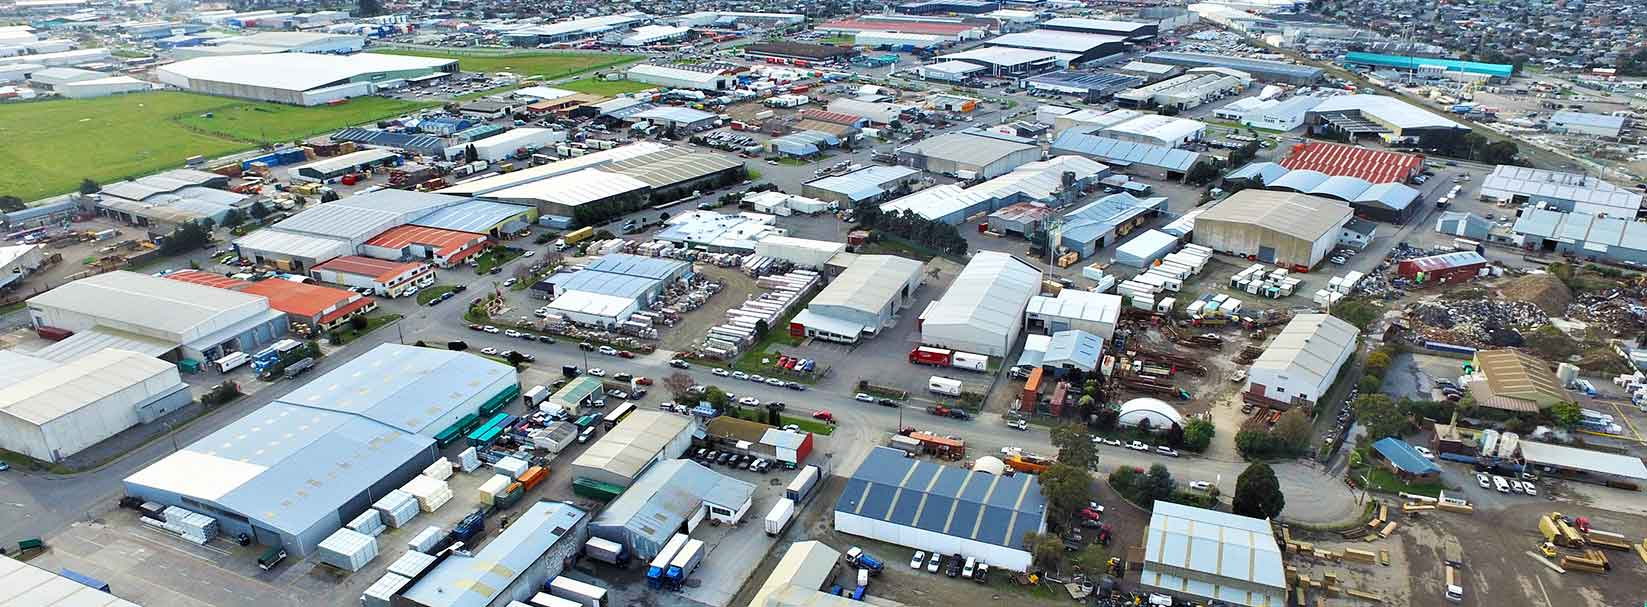 Hornby industrial property market remains strong